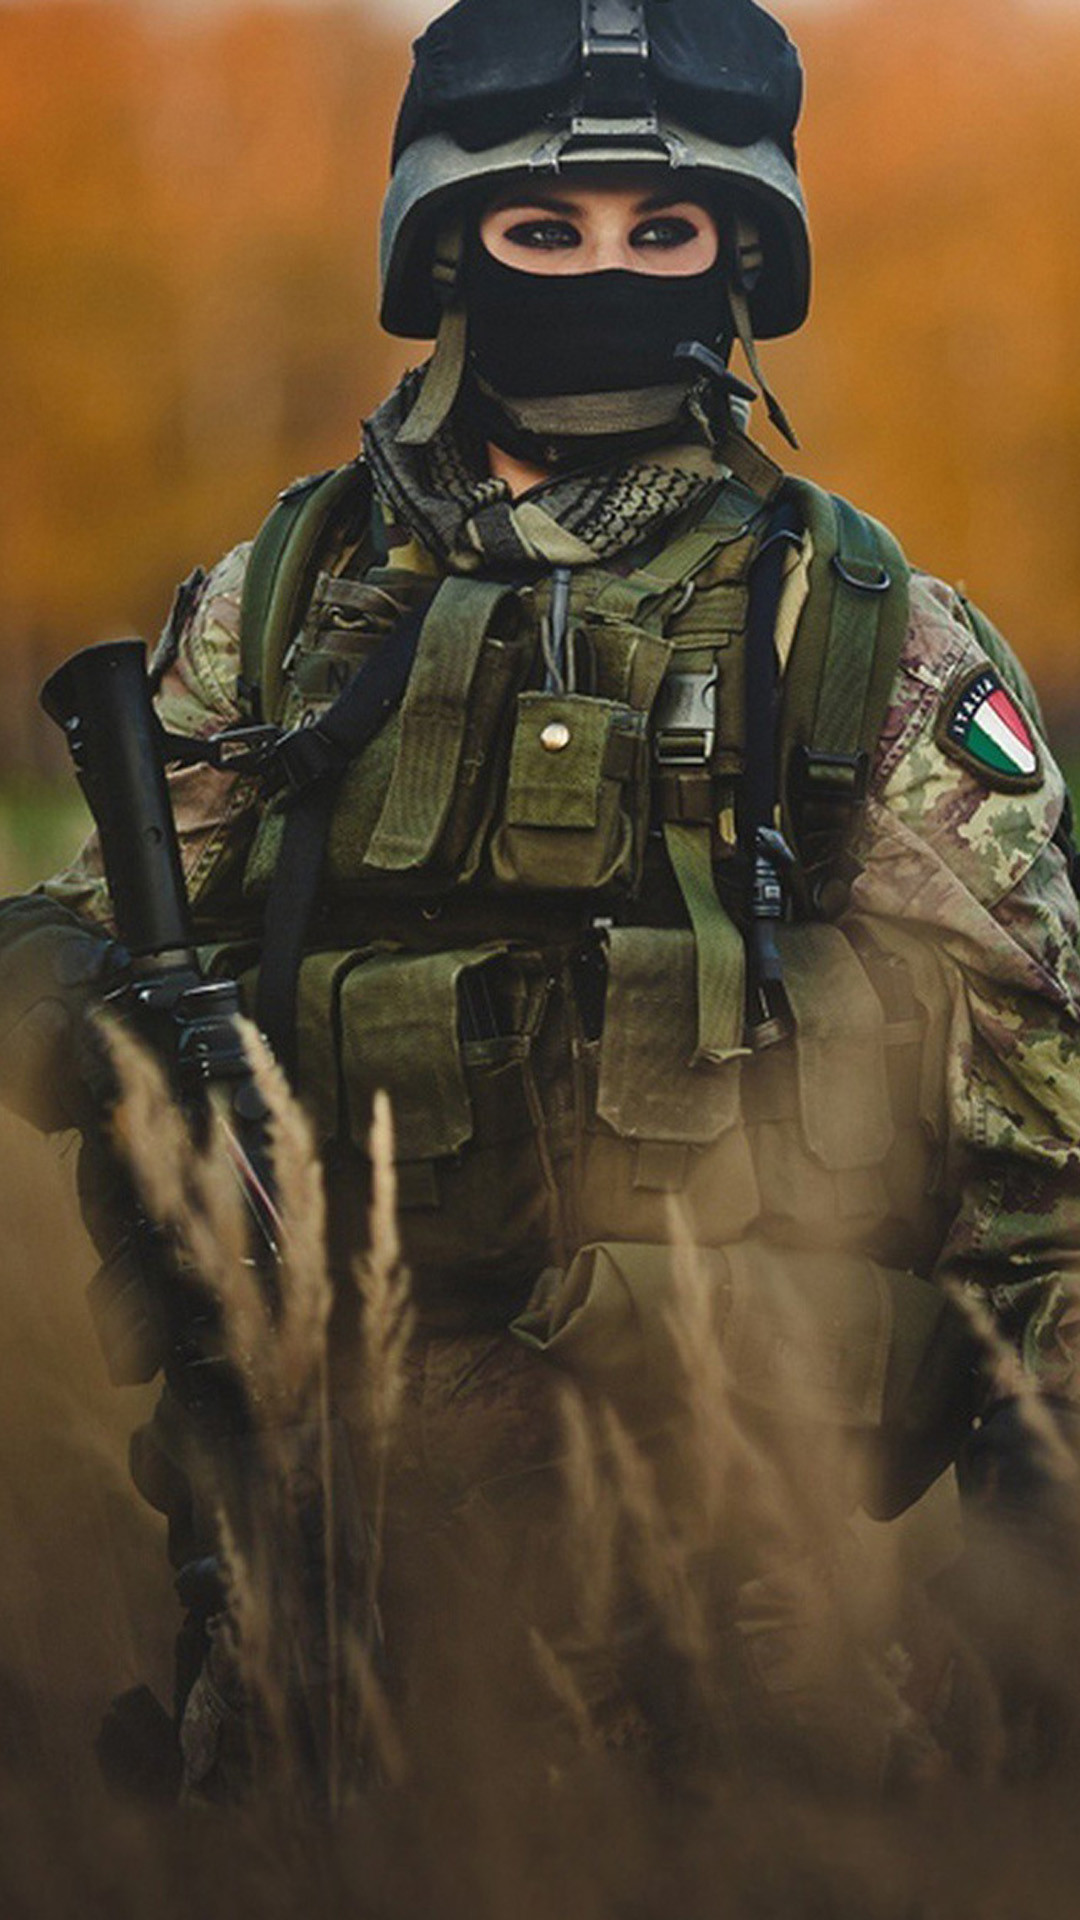 us army iphone wallpaper (67+ images)